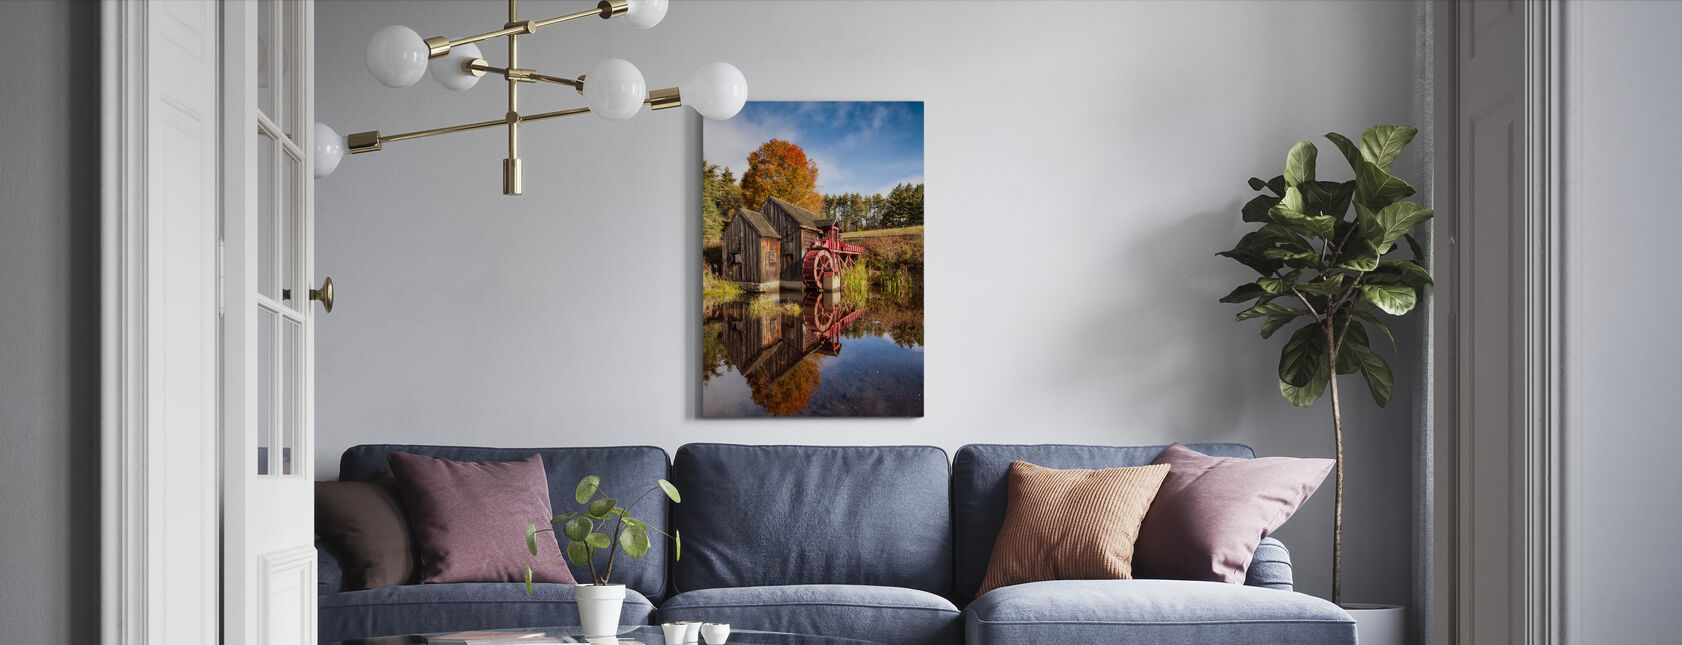 The Old Grist Mill - Canvas print - Living Room